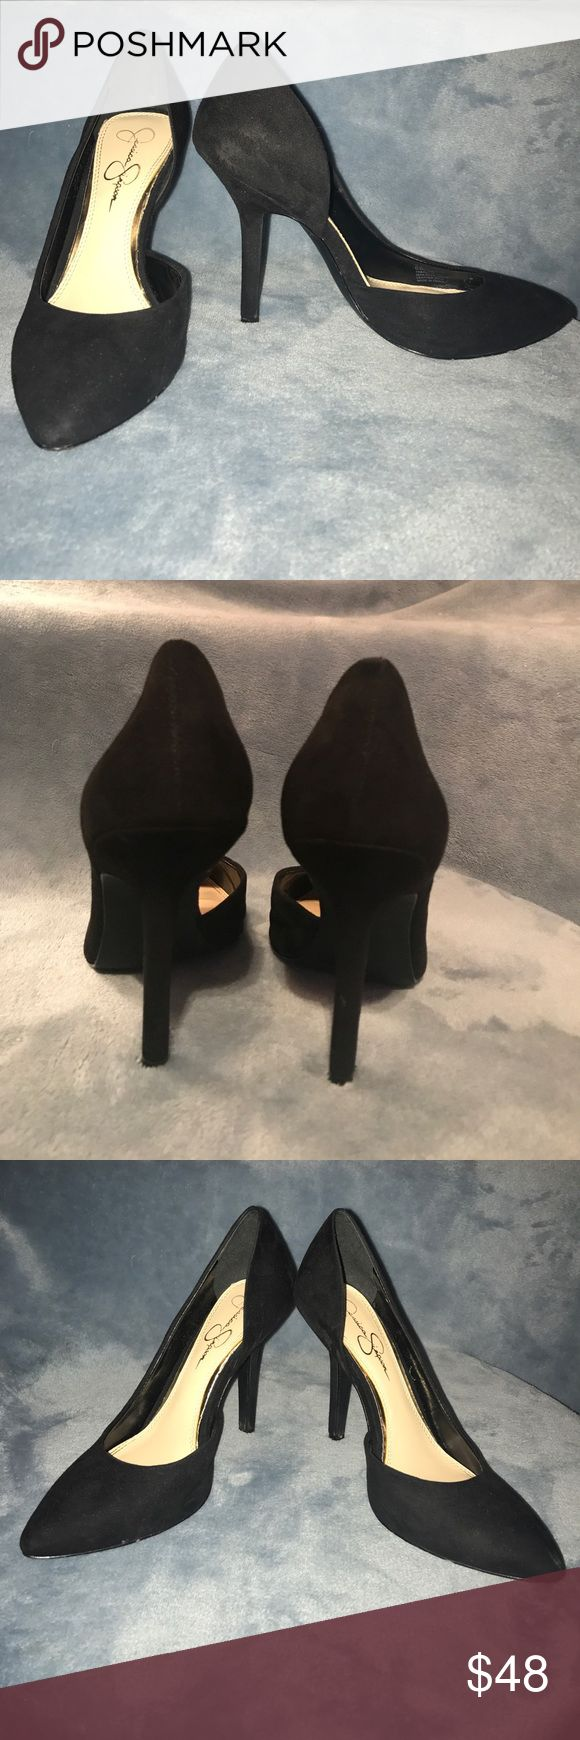 Jessica Simpson Pumps Never sexier than in these cut out black pumps. Jessica Simpson Shoes Heels